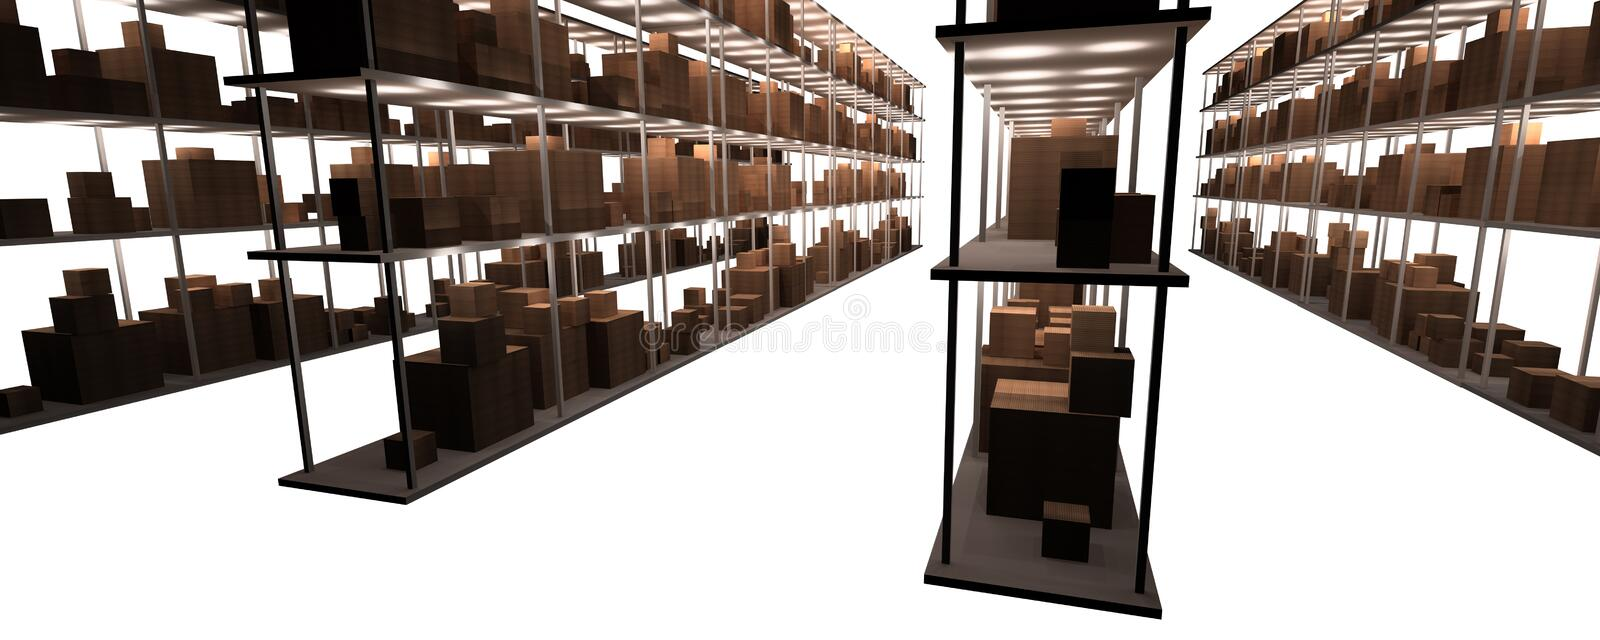 Stock and warehouse shelves